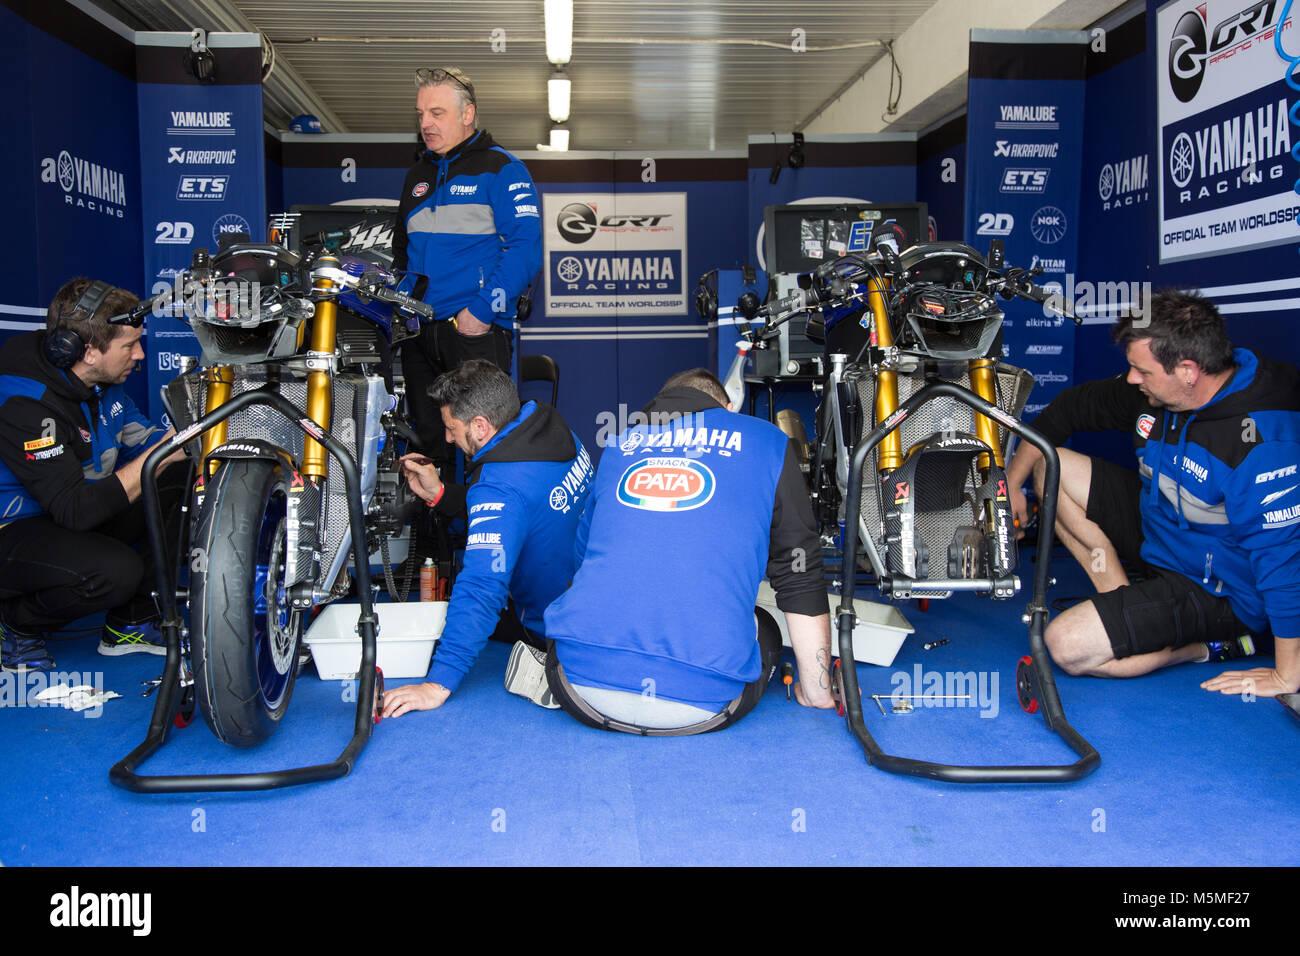 Garage Yamaha Melbourne Australia 25th February 2018 In The Yamaha Team